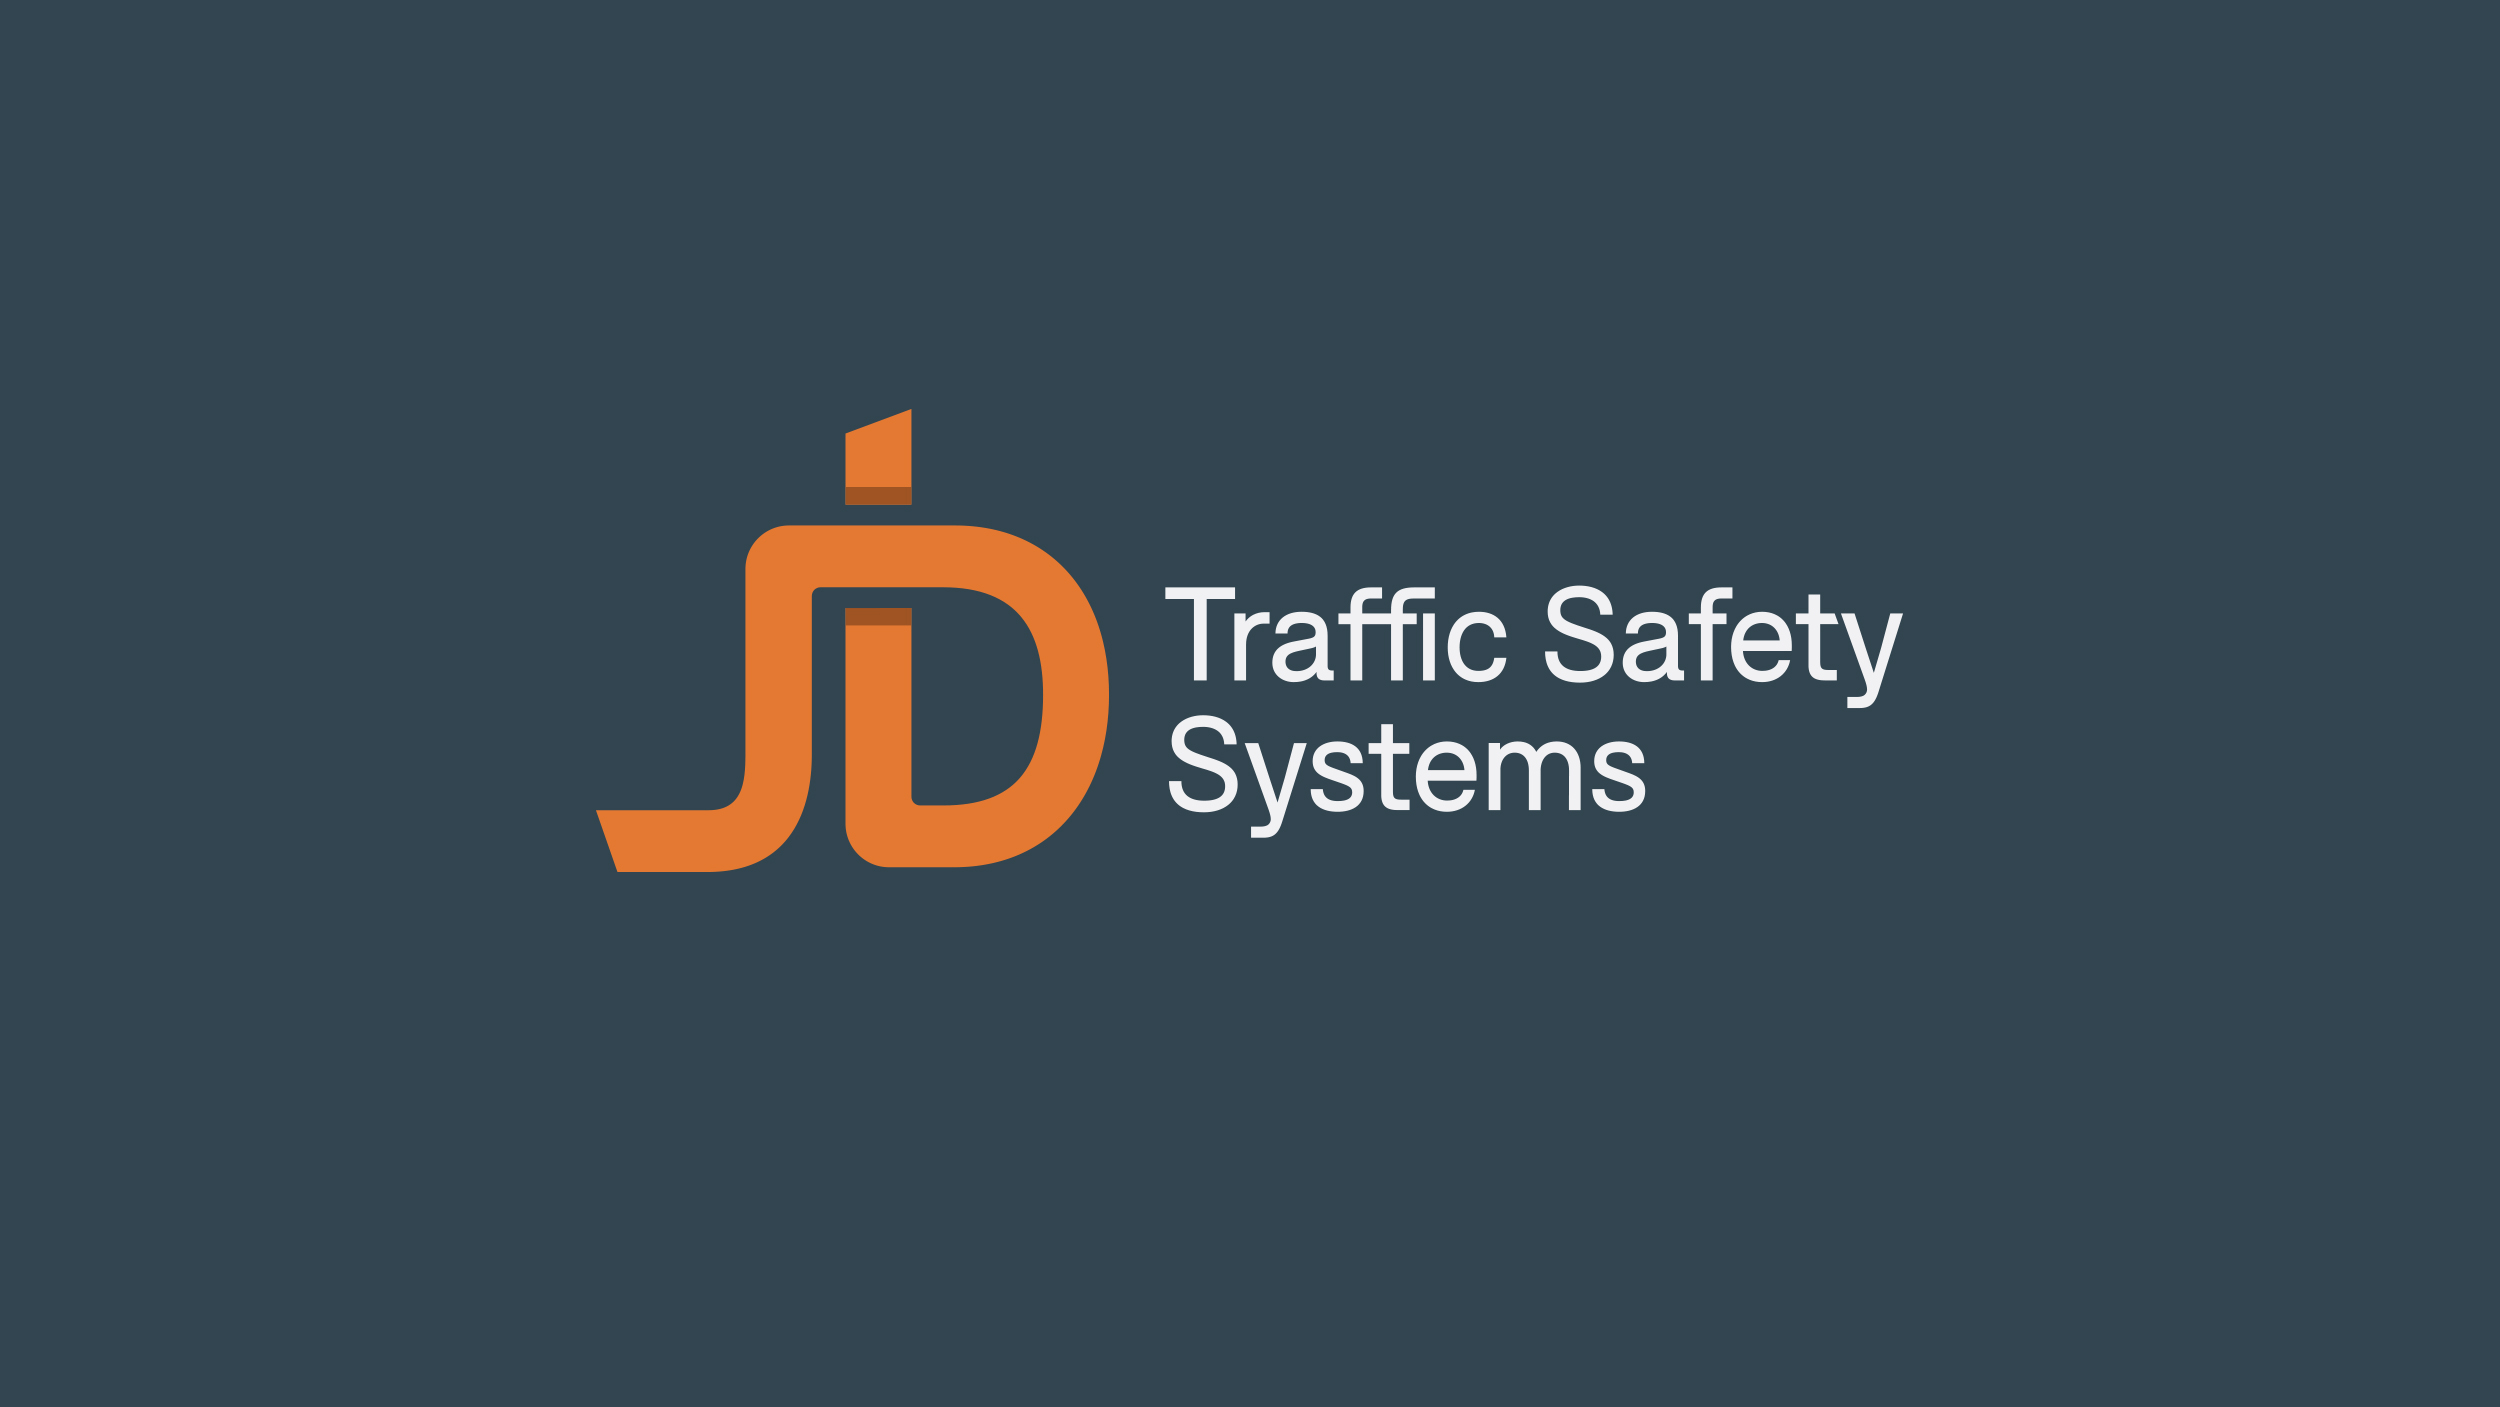 JD Traffic Safety Systems - Visuele identiteit